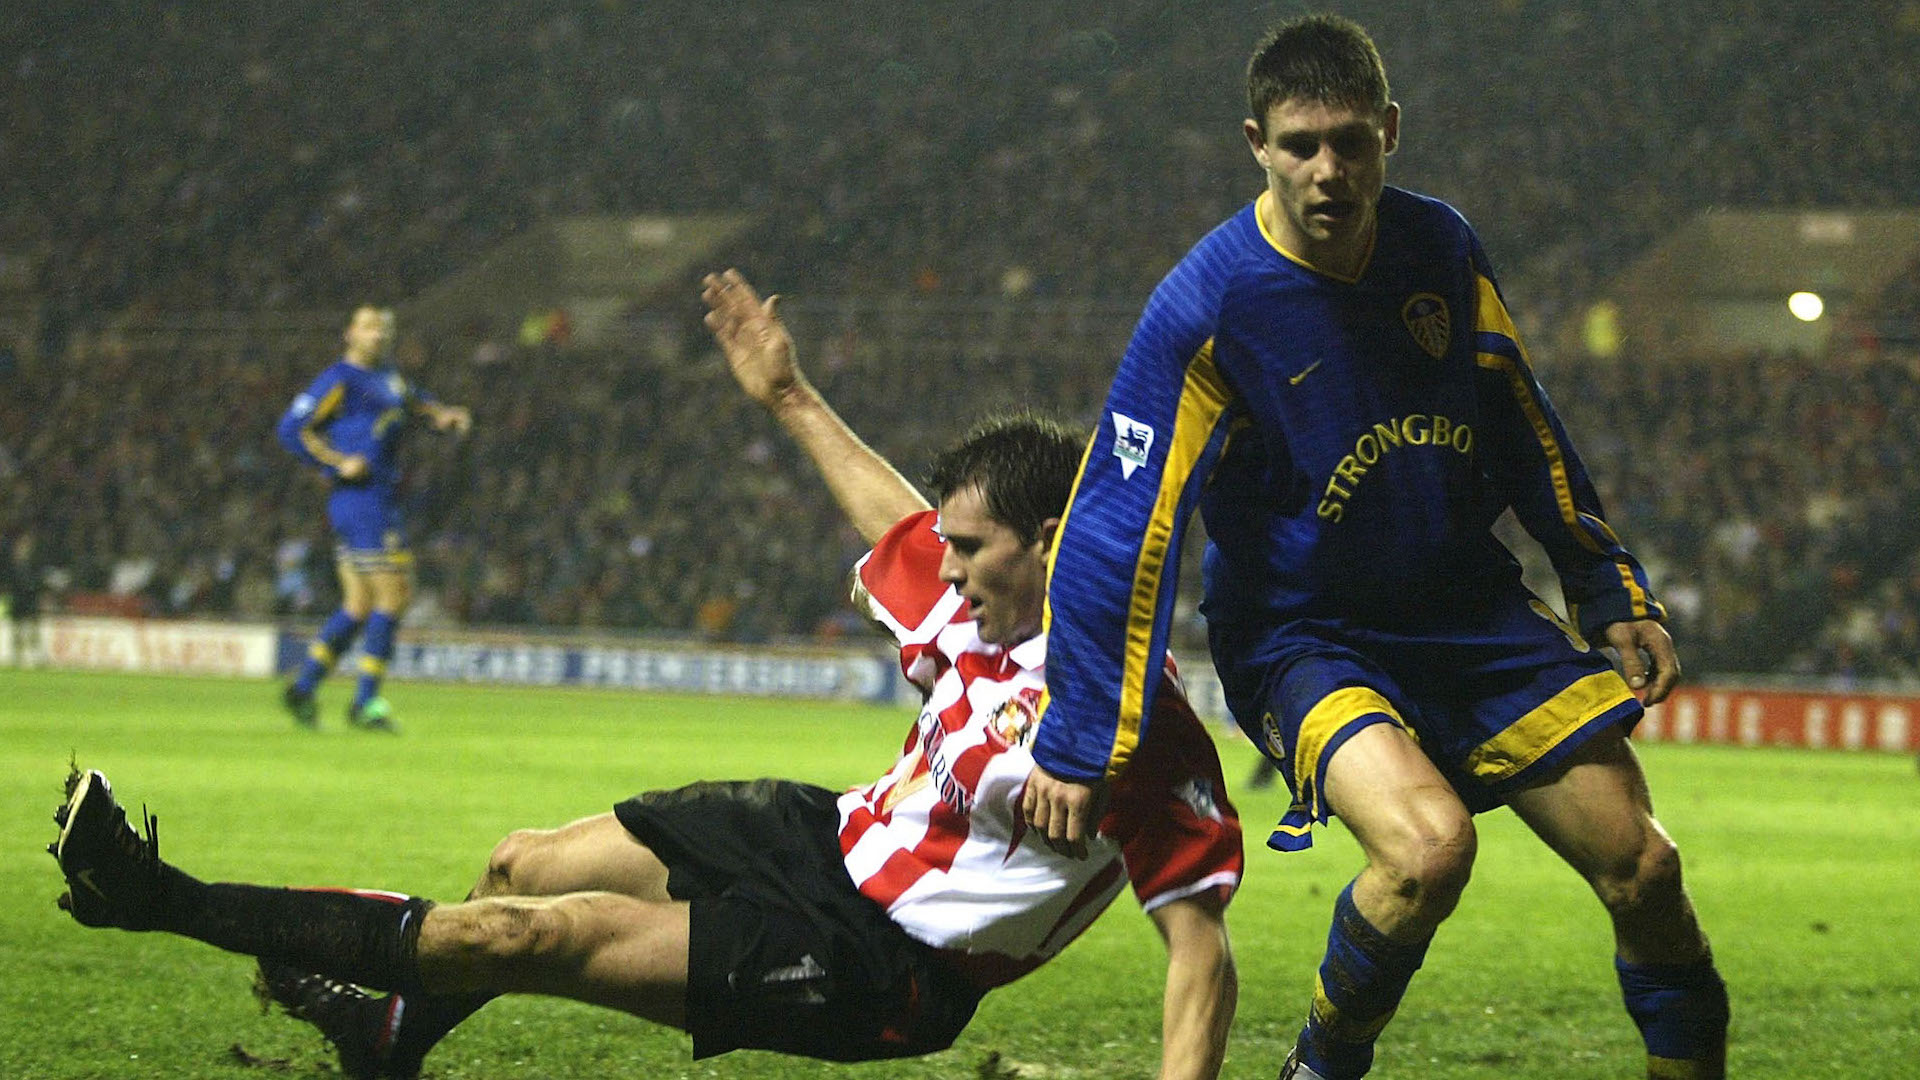 James Milner vs. Sunderland 2002